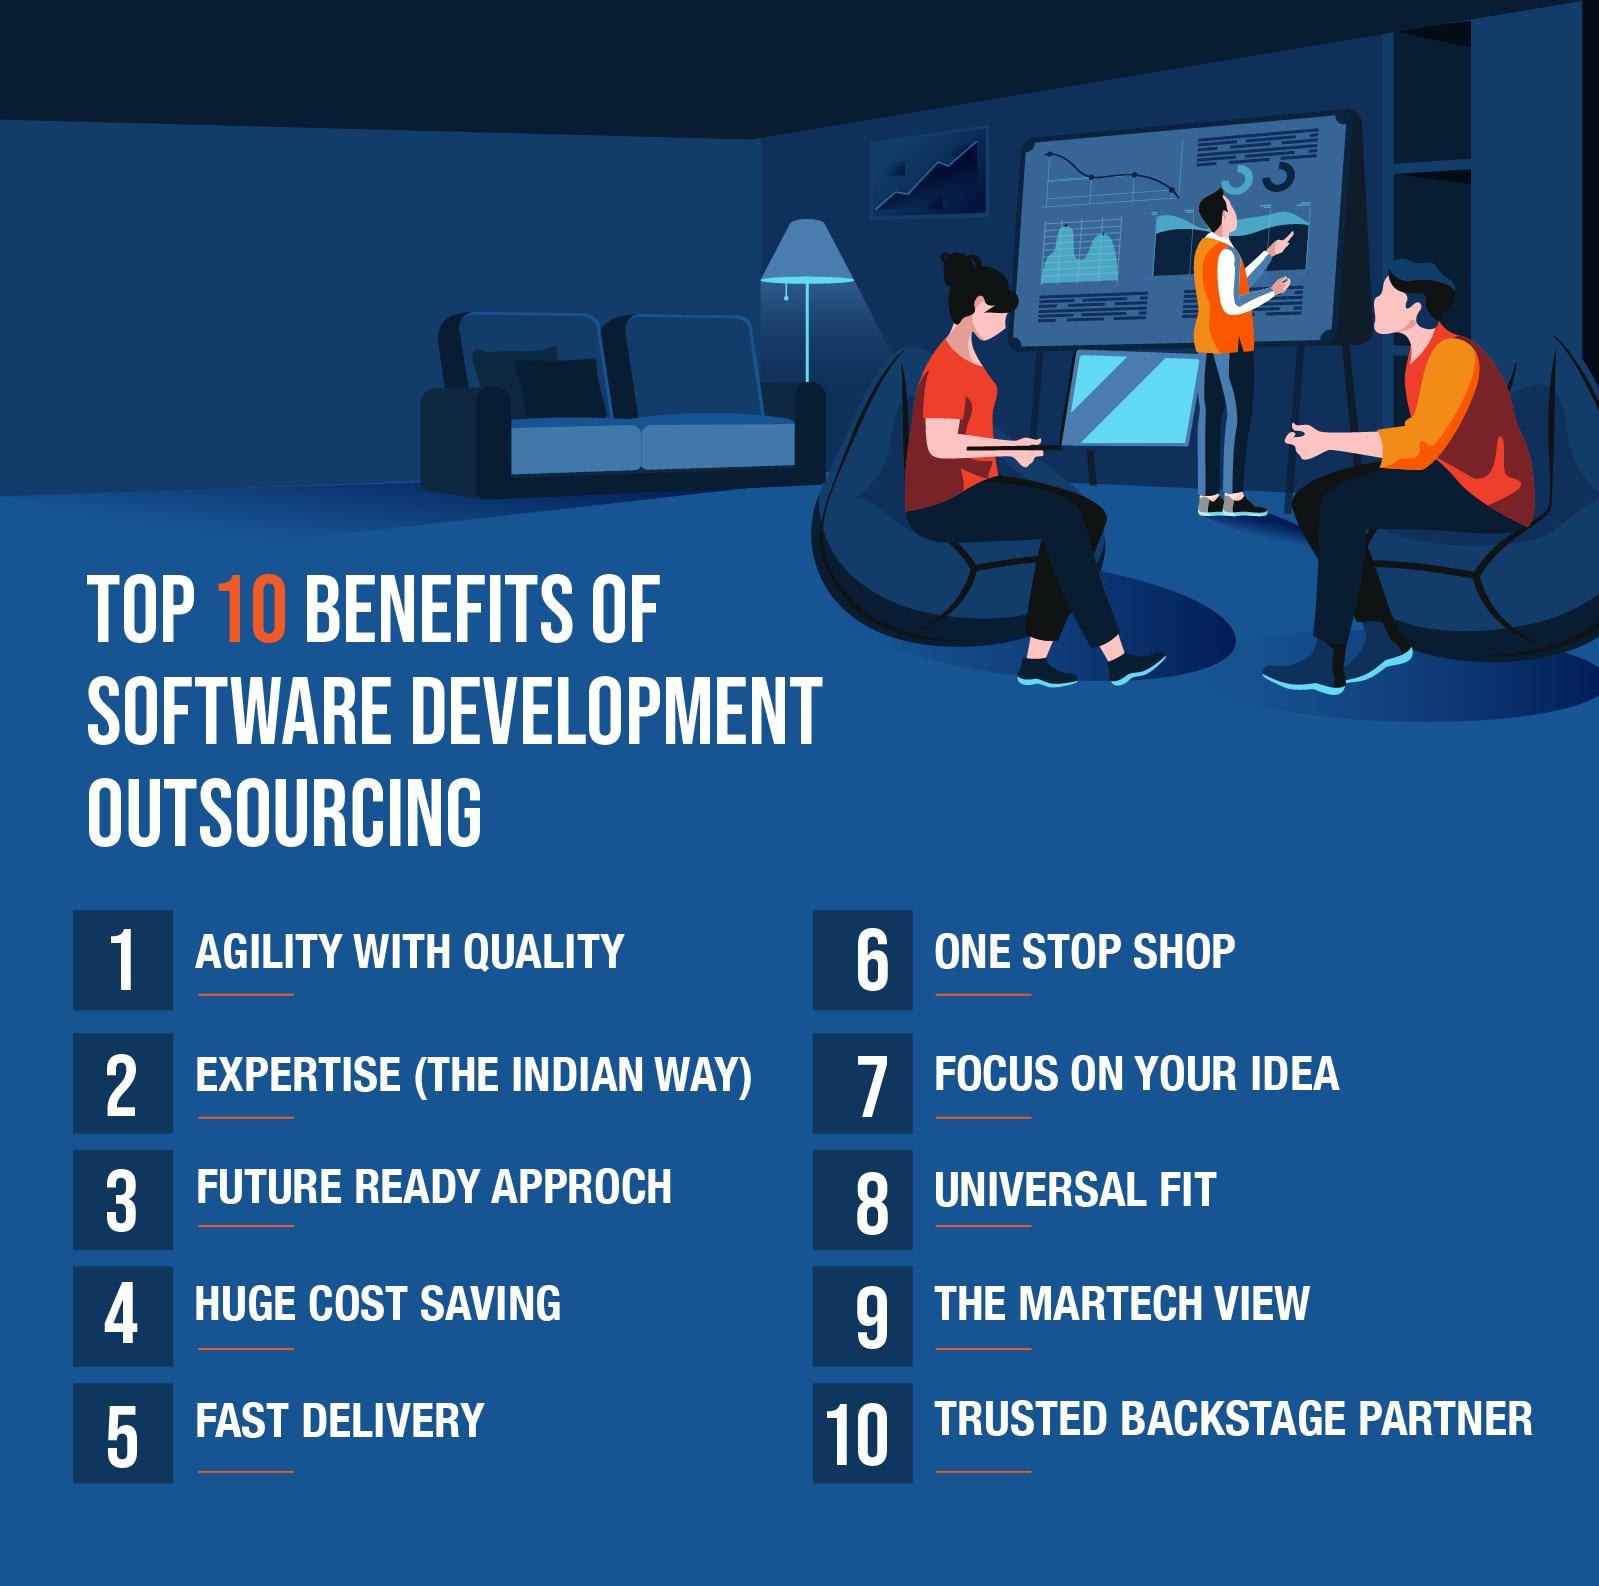 pros of Software Development Outsourcing